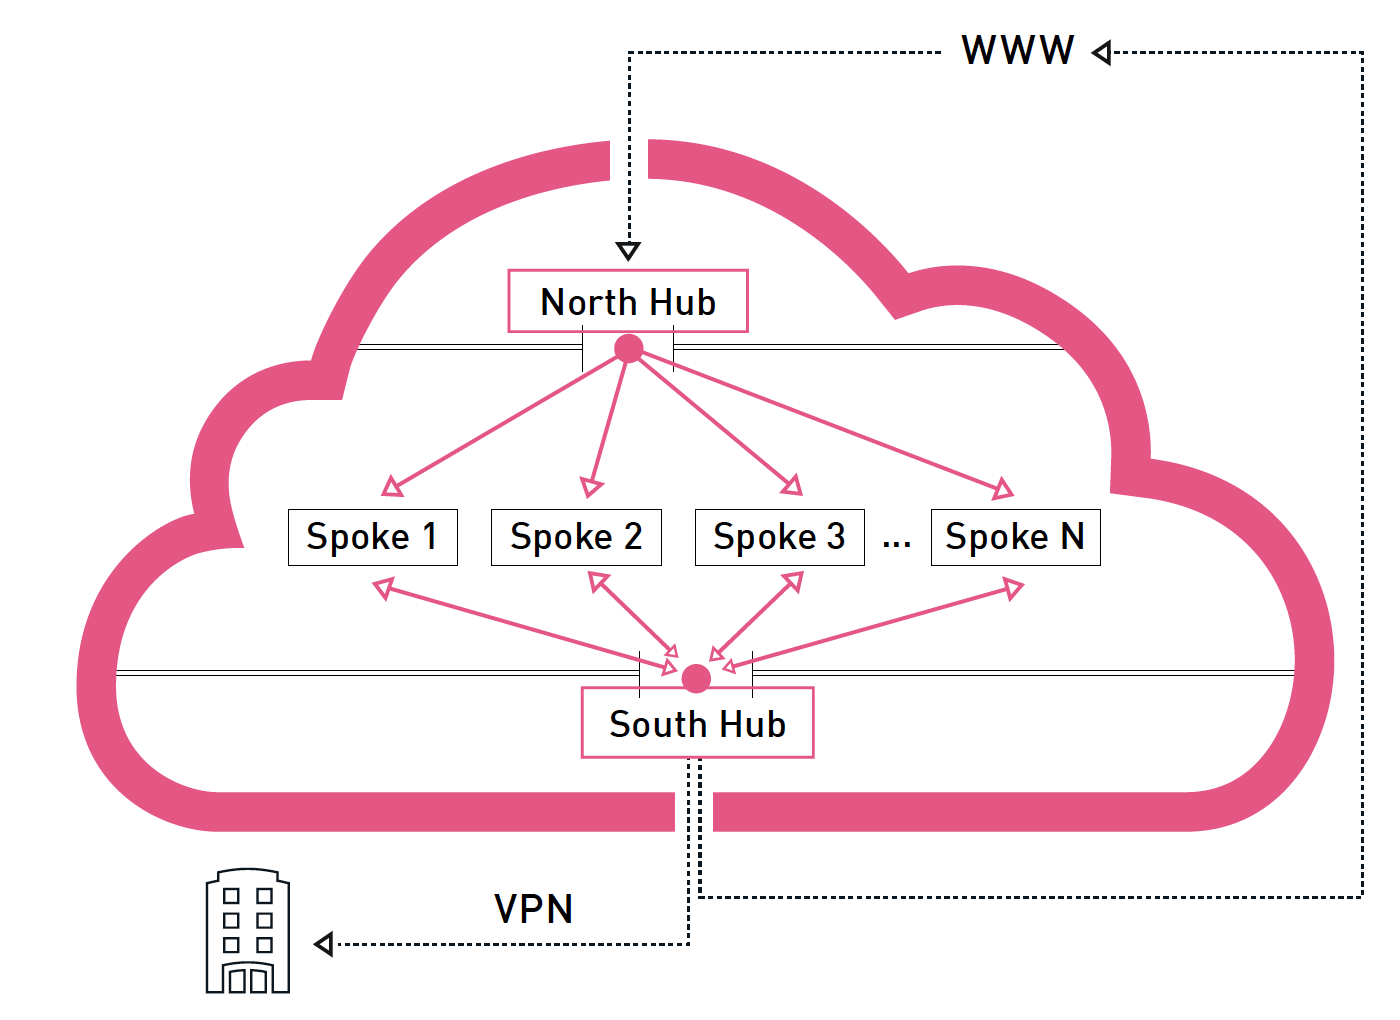 Figure 2: All traffic is routed through the hubs. The North Hub is for incoming traffic and the South Hub is for traffic to and from the corporate network, traffic to the Internet, and East-West access between spokes. Each spoke comprises cloud virtual machines with varying security and access levels.